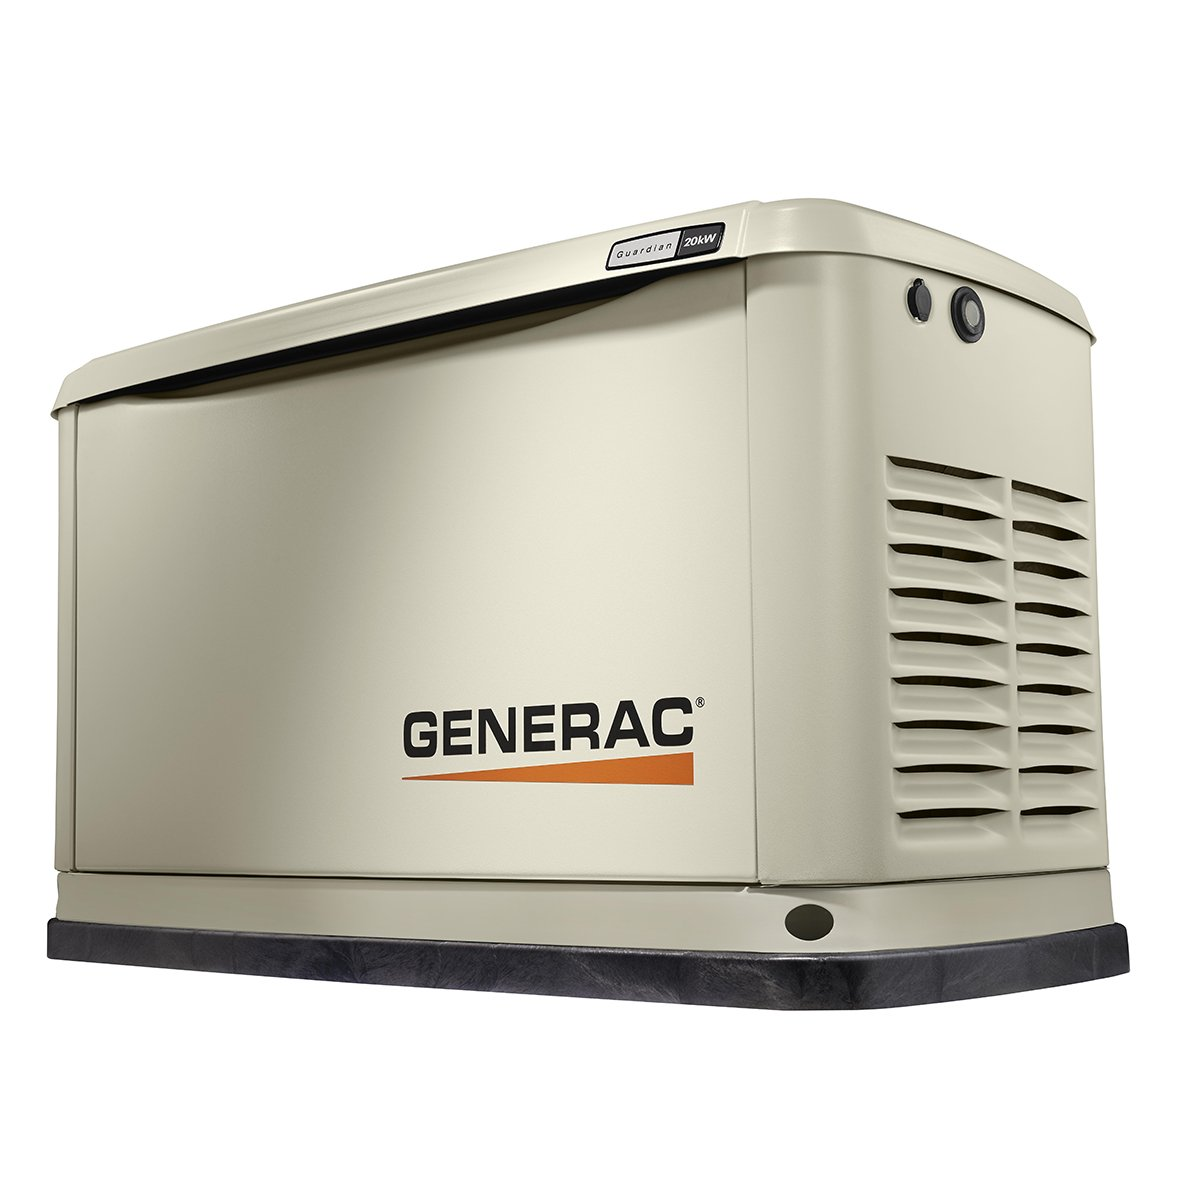 Amazon.com : Generac 7039 Guardian Series 20kW/18kW Air Cooled Home Standby  Generator with Whole House 200 Amp Transfer Switch (not CUL) : Garden &  Outdoor